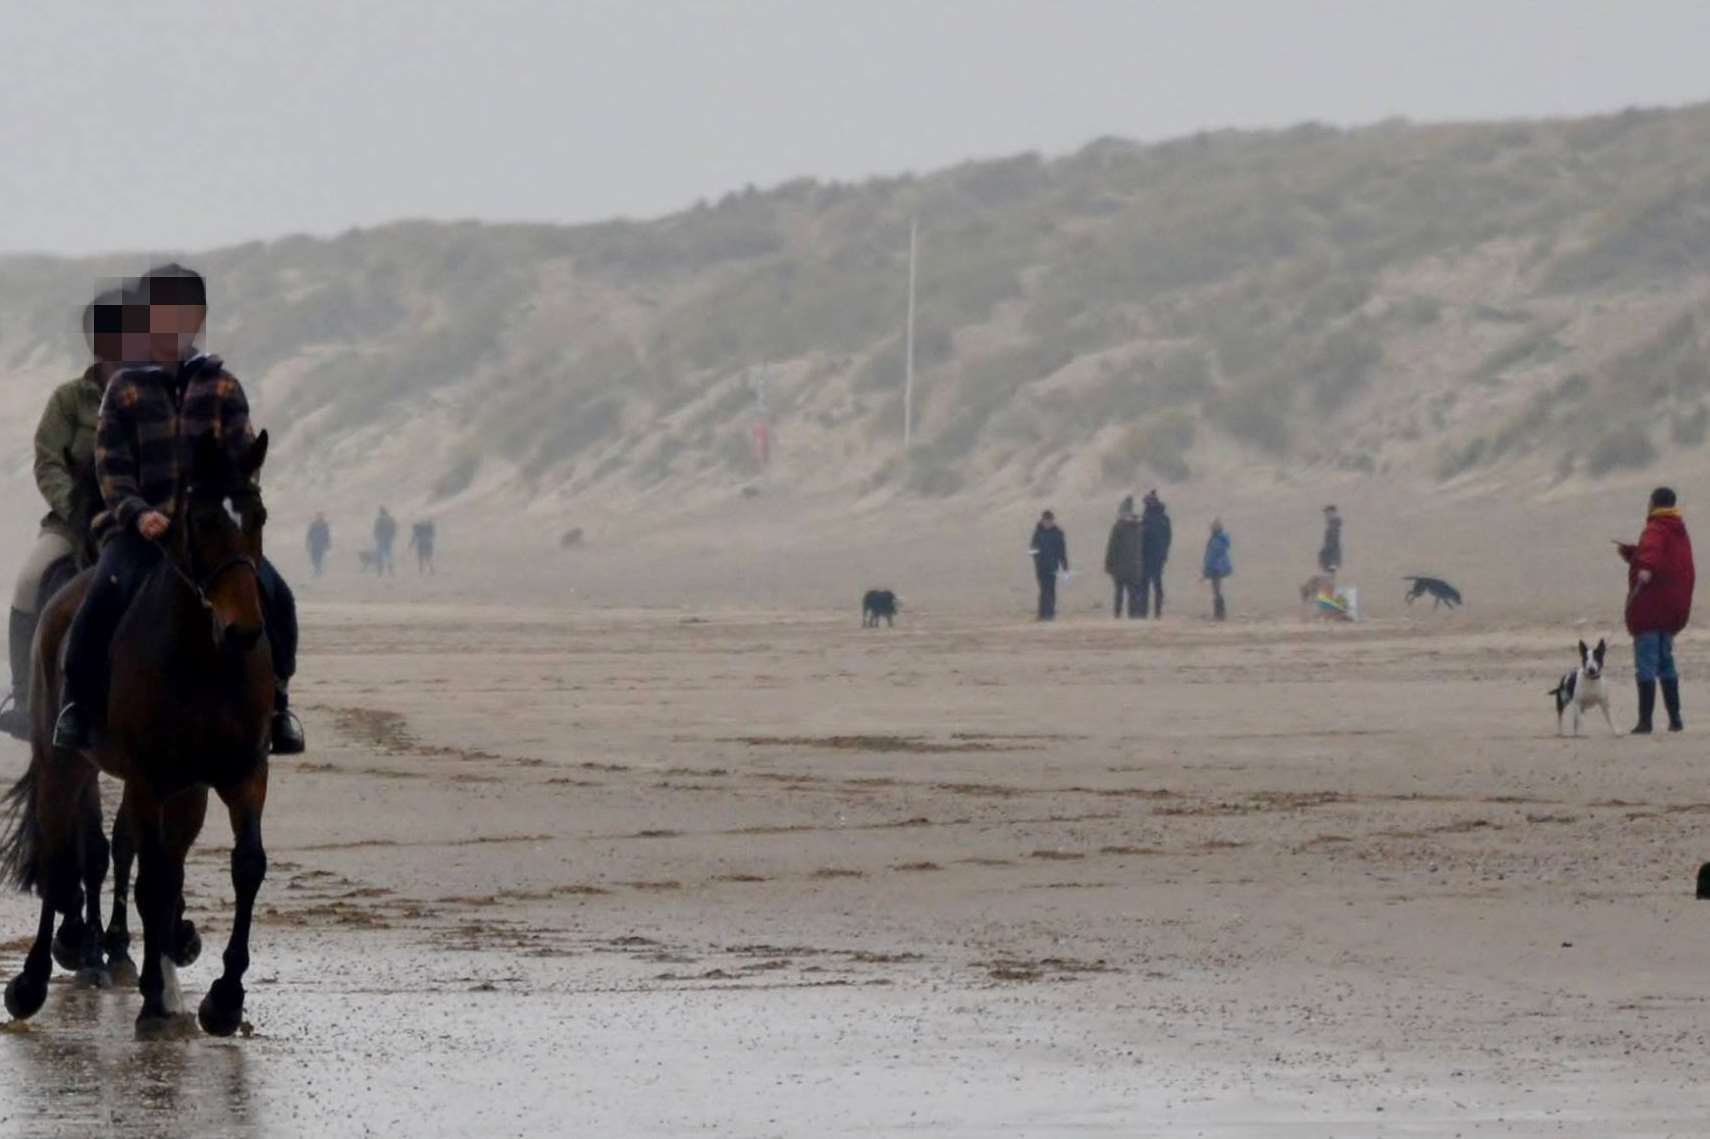 Police were called and took statements from walkers out on the beach on New Year's Eve